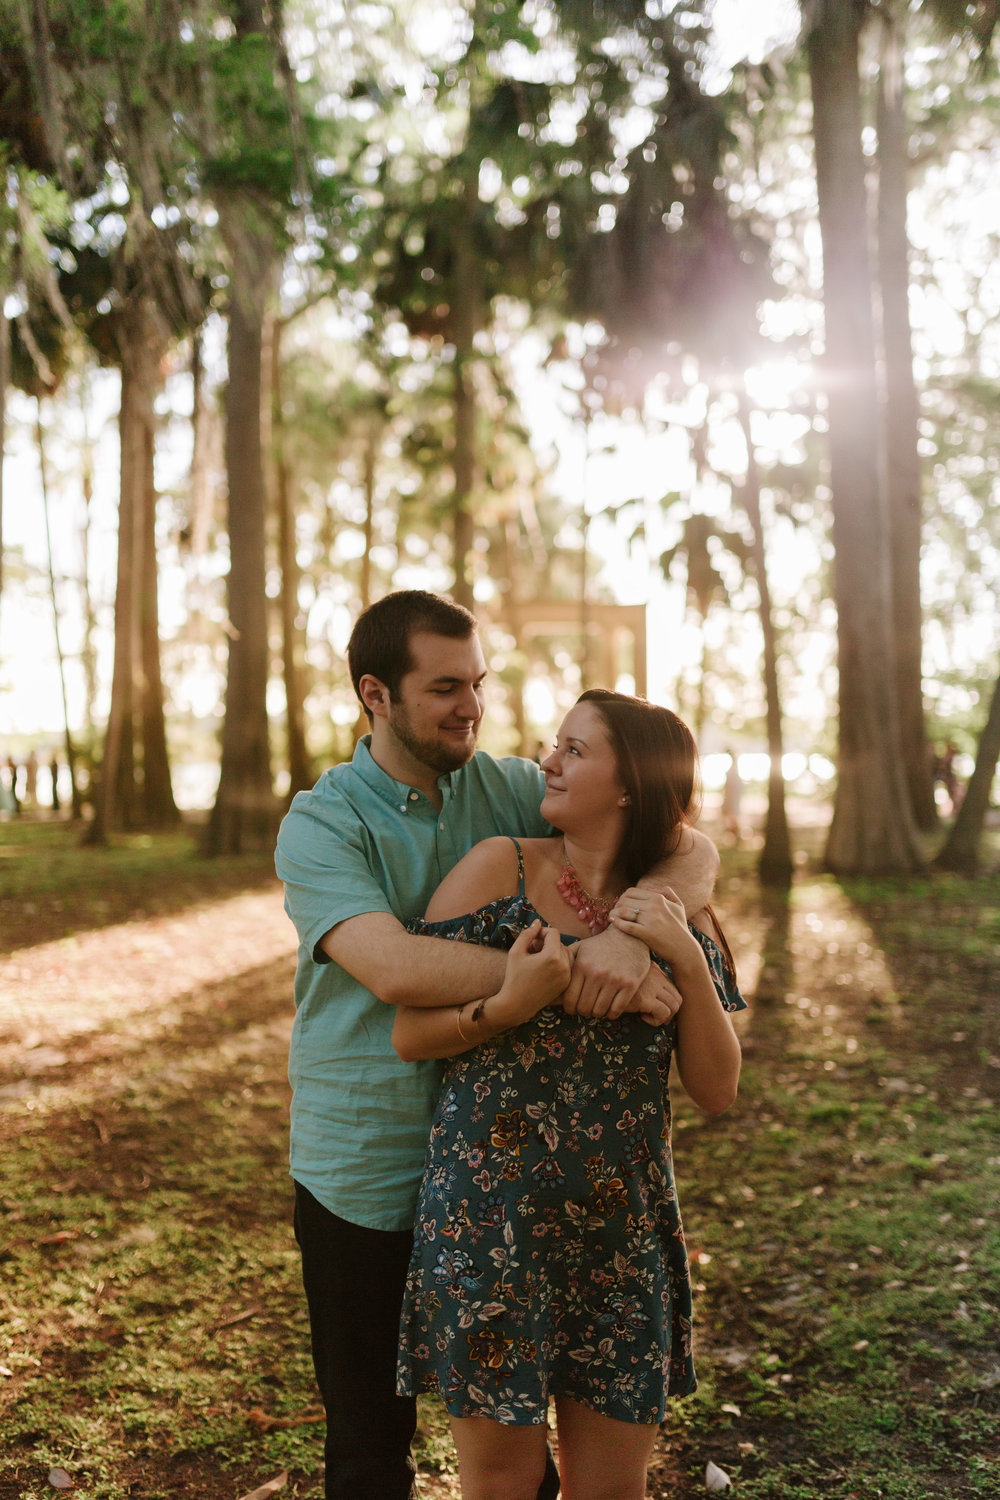 2017.04.29 Kaleb and Cole Kraft Azalea Gardens Engagement (77 of 140).jpg